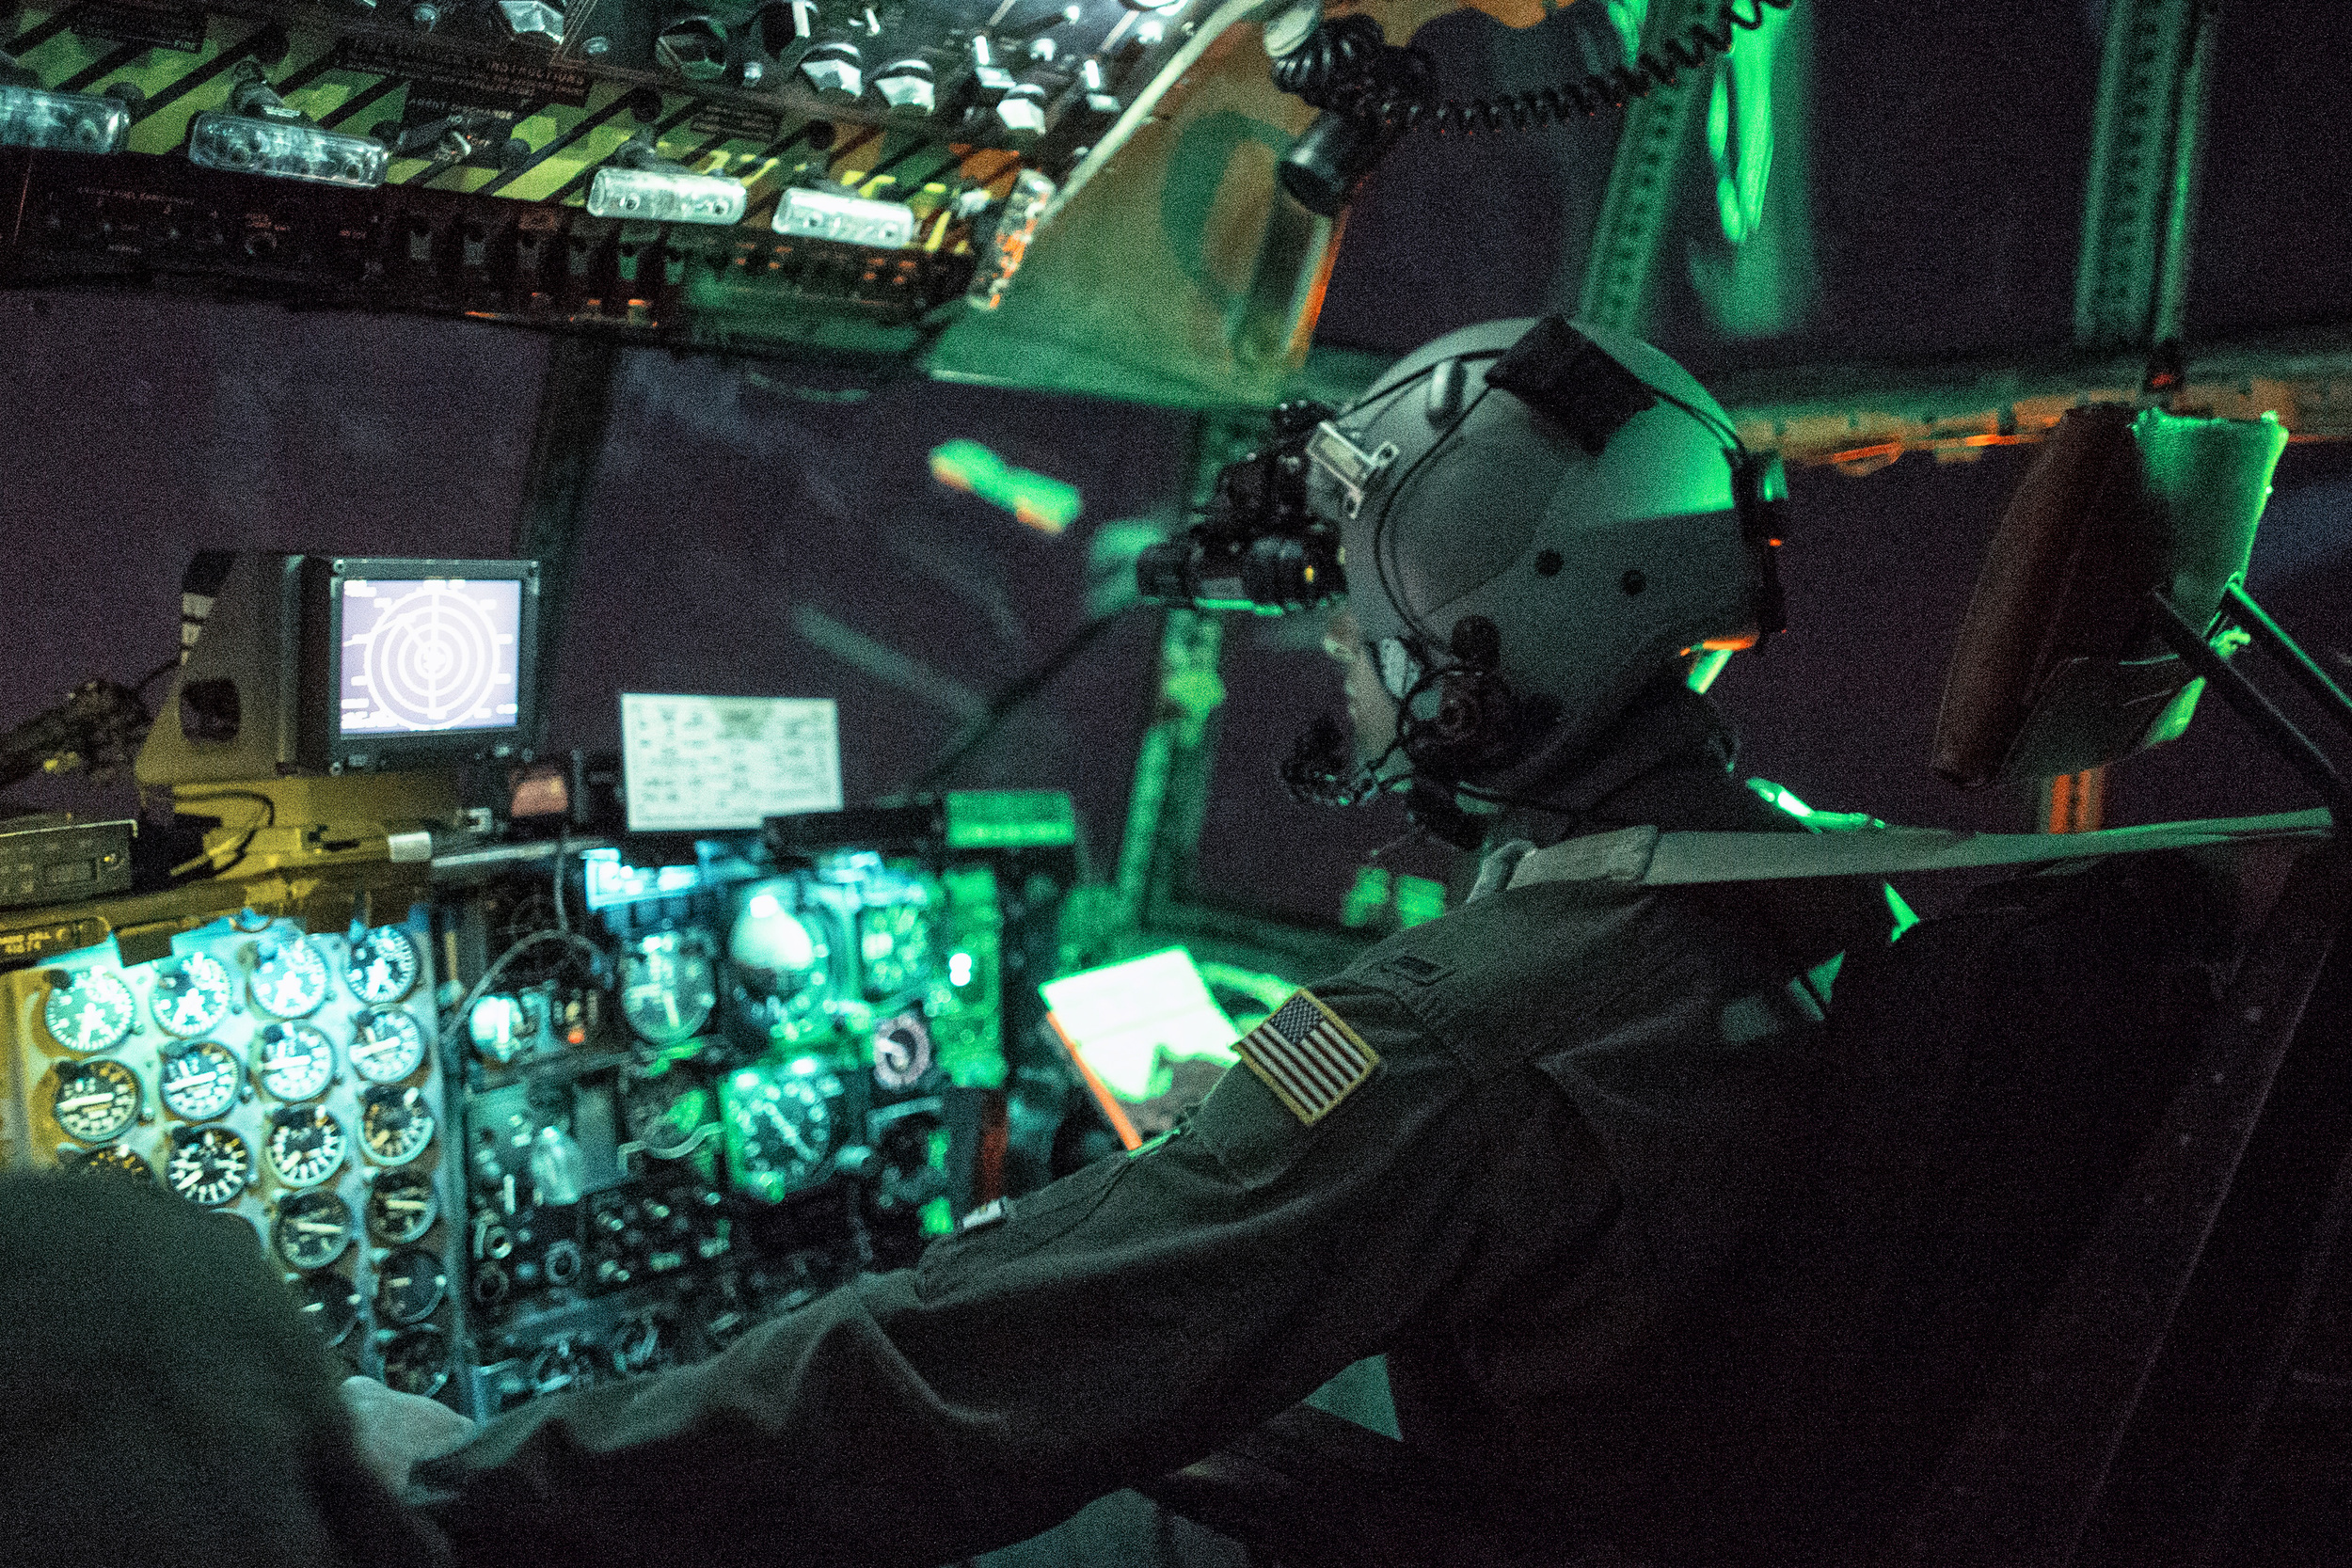 1st Lt. Randall Kanzelmeyer, 36th Airlift Squadron c-130 Hercules pilot, wears a night vision goggle during a training mission above Yokota Air Base, Japan, Oct. 14, 2015. Yokota aircrews regularly conduct night flying operations to ensure they're prepared to respond to a variety of contingencies throughout the Indo-Asia Pacific region. (U.S. Air Force photo by Osakabe Yasuo/Released)